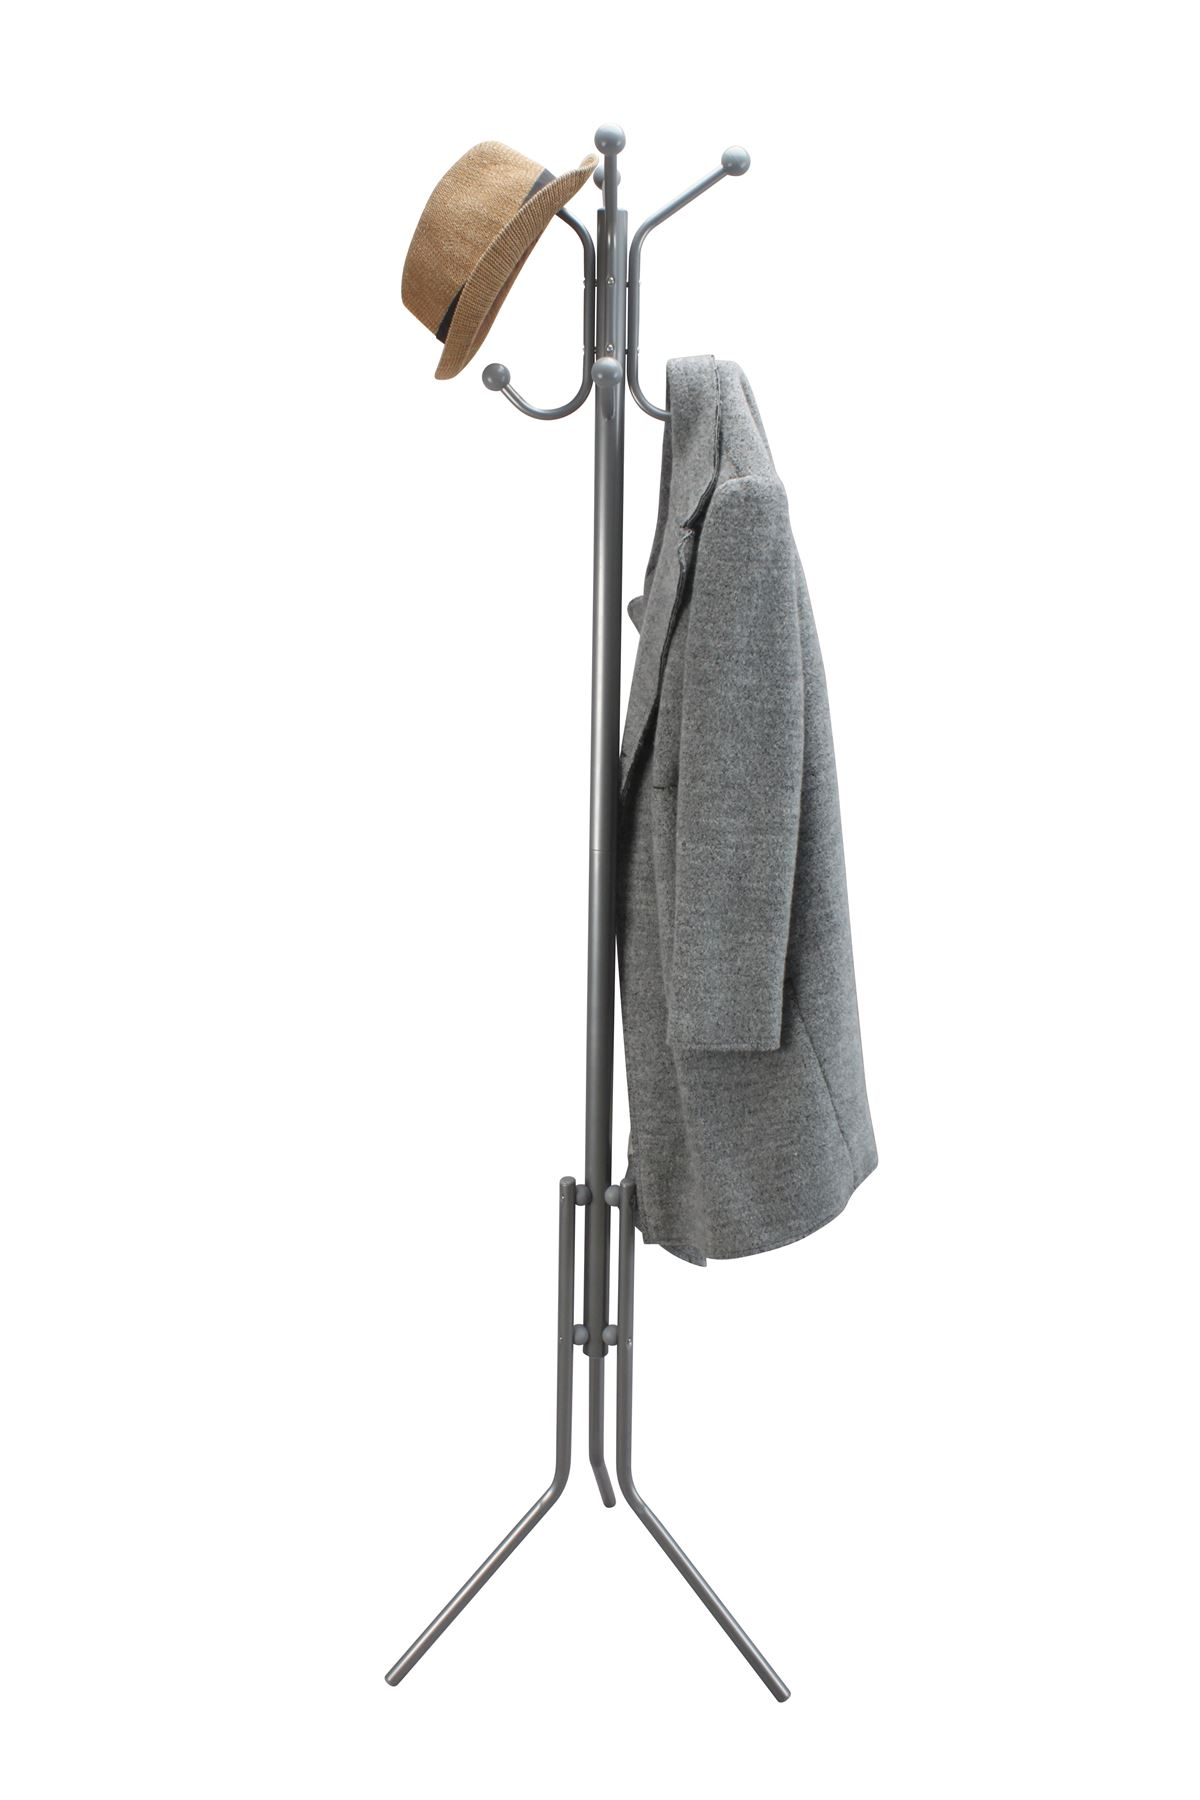 Hook Clothing 8 Hook Coat Stand Clothes Rack Jacket Hat Hanger Organiser